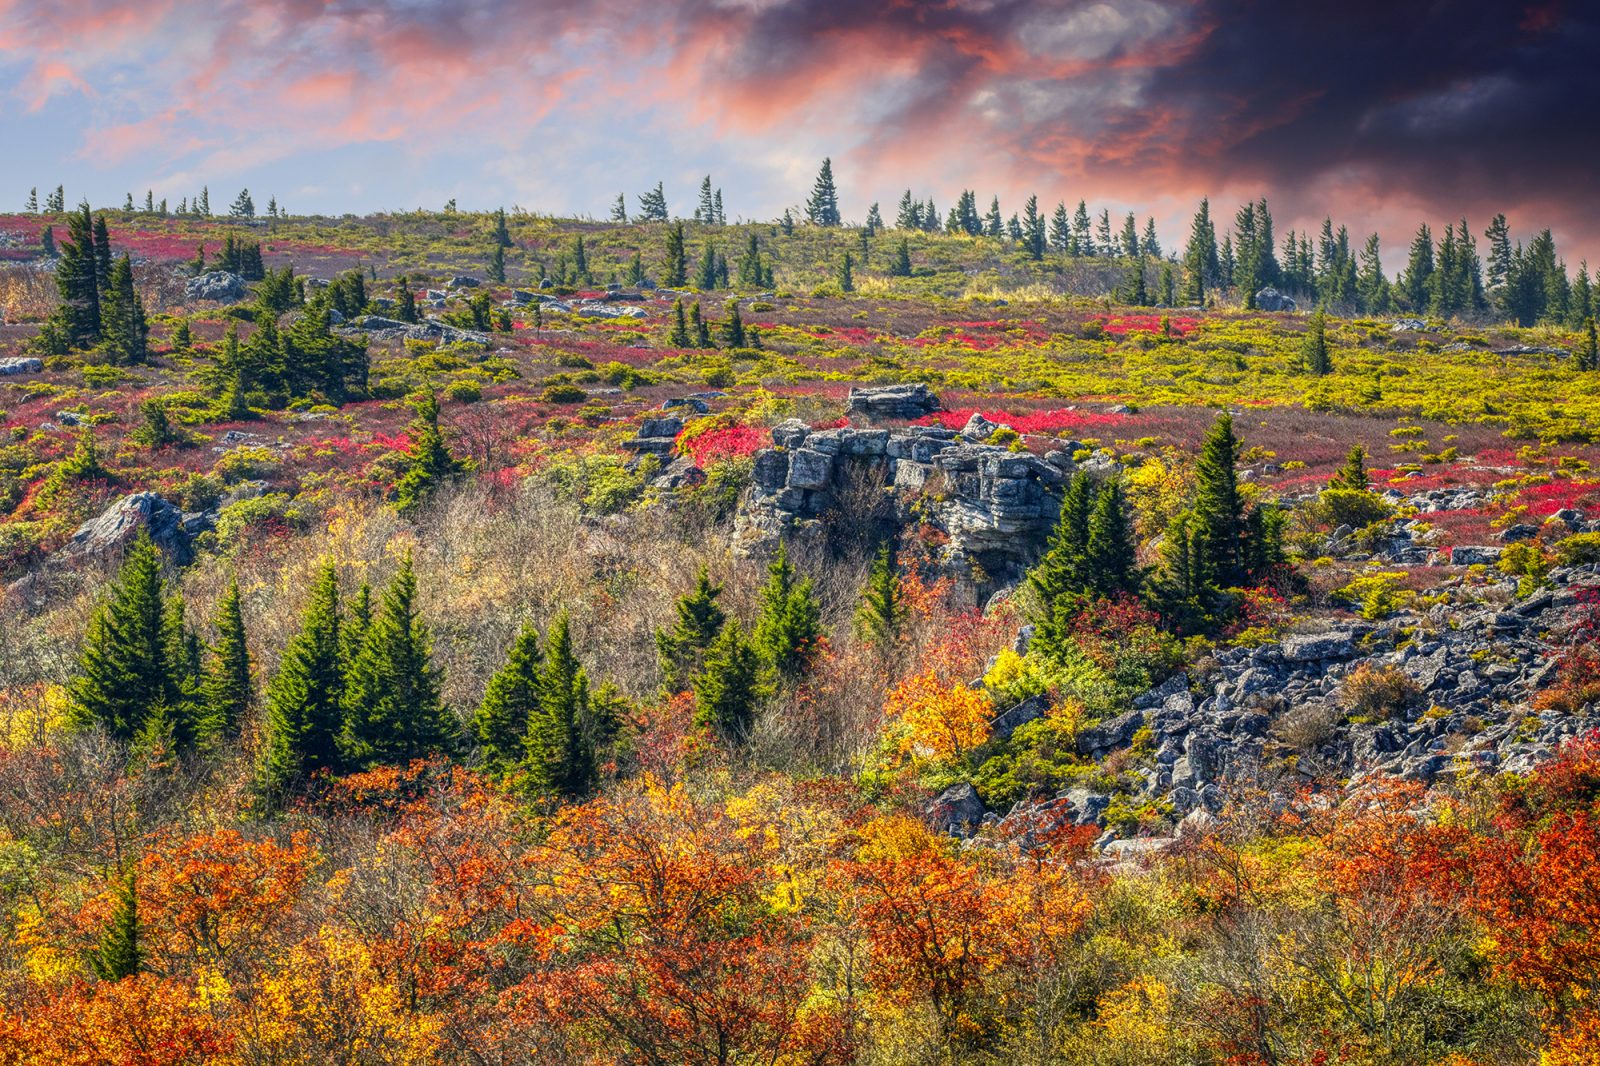 The splendor and loneliness of autumn